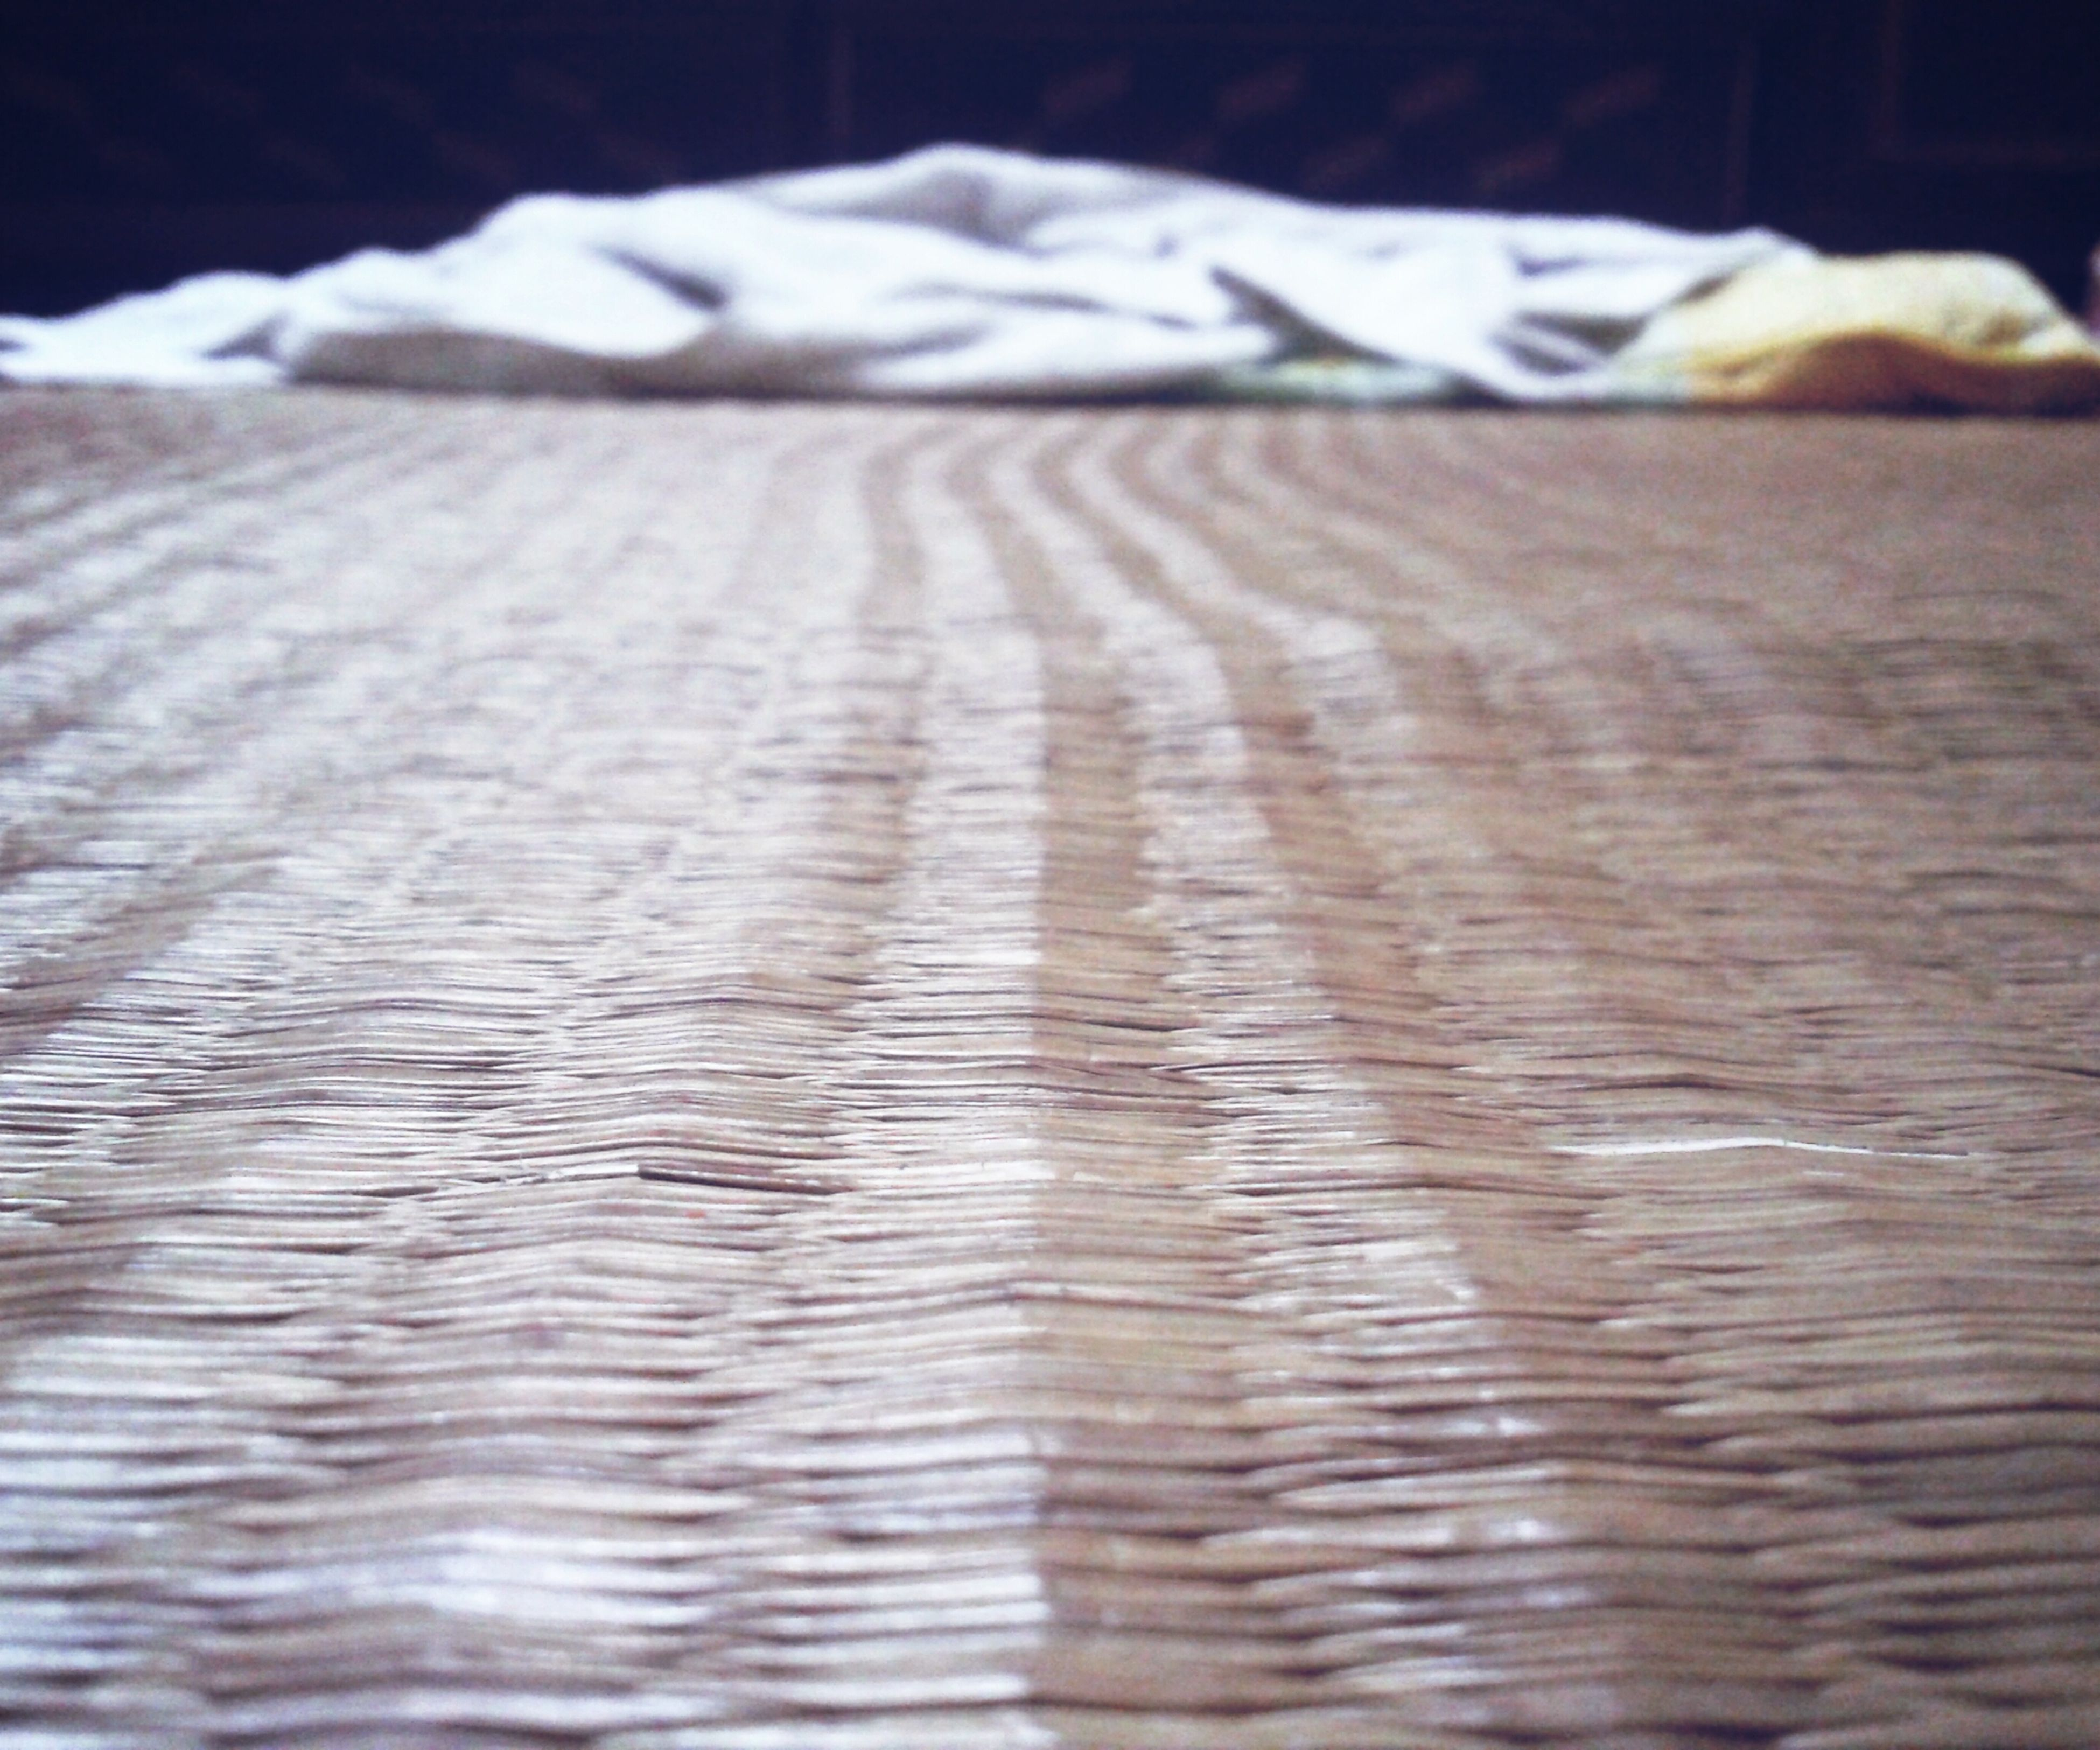 Textures And Surfaces Sedge Mat Vietnam Bed